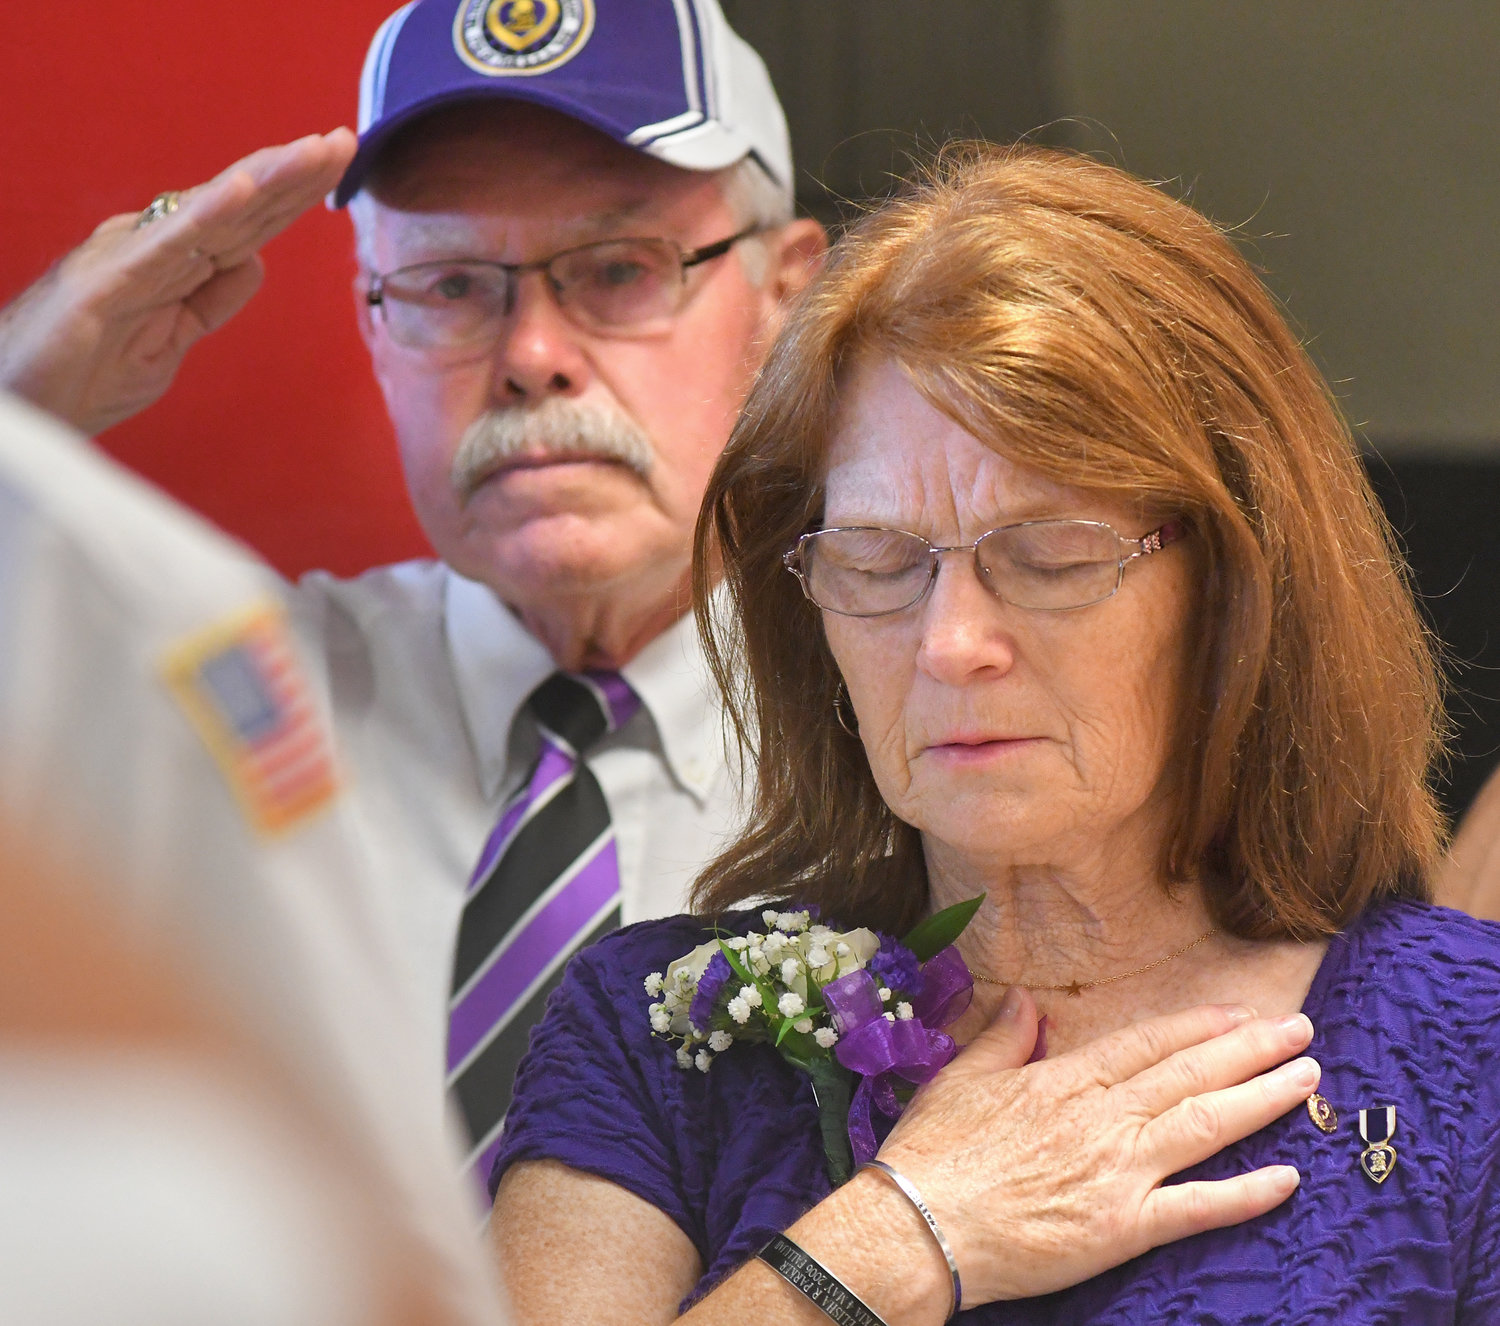 HONORING AND REMEMBERING — Gold Star mother Donna Parker and her husband Renny Parker stand during the playing of Taps at a National Purple Heart Day wreath-laying ceremony Wednesday at the Utica Memorial Auditorium. Their son, Marine Corps Sgt. Elisha R. Parker of Camden, was killed in action in Iraq on May 4, 2006, at age 21. The ceremony Wednesday was by CNY Chapter 490 Military Order of the Purple Heart of the USA. Additional photos online at www.romesentinel.com.